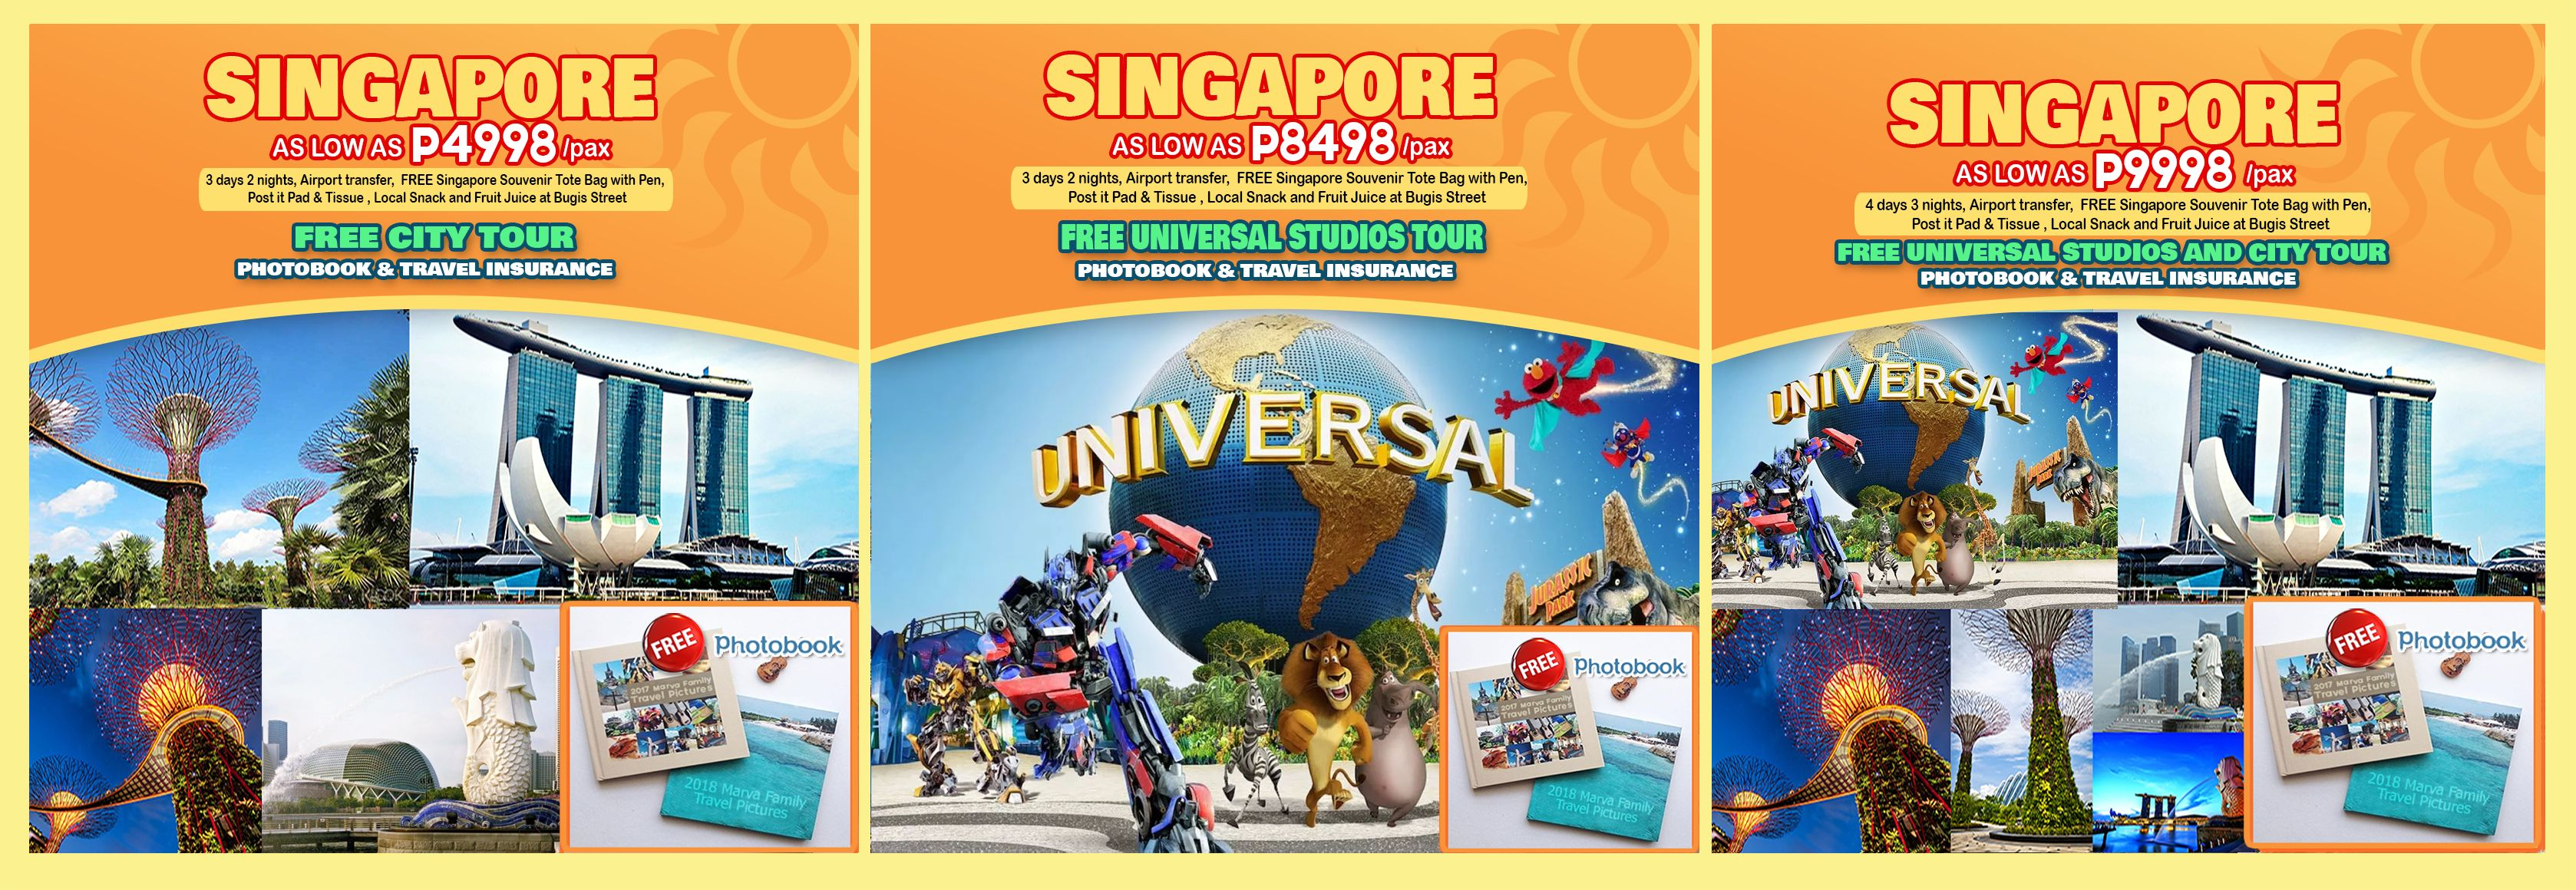 Singapore Promos Voucher Map 100000 No Exp Date Promo Is Base On Fragrance Sunflower Emerald Pearl Crystal Hotel Valid Now Until March 2019 We Also Offer Other Hotels Different Travel Dates And